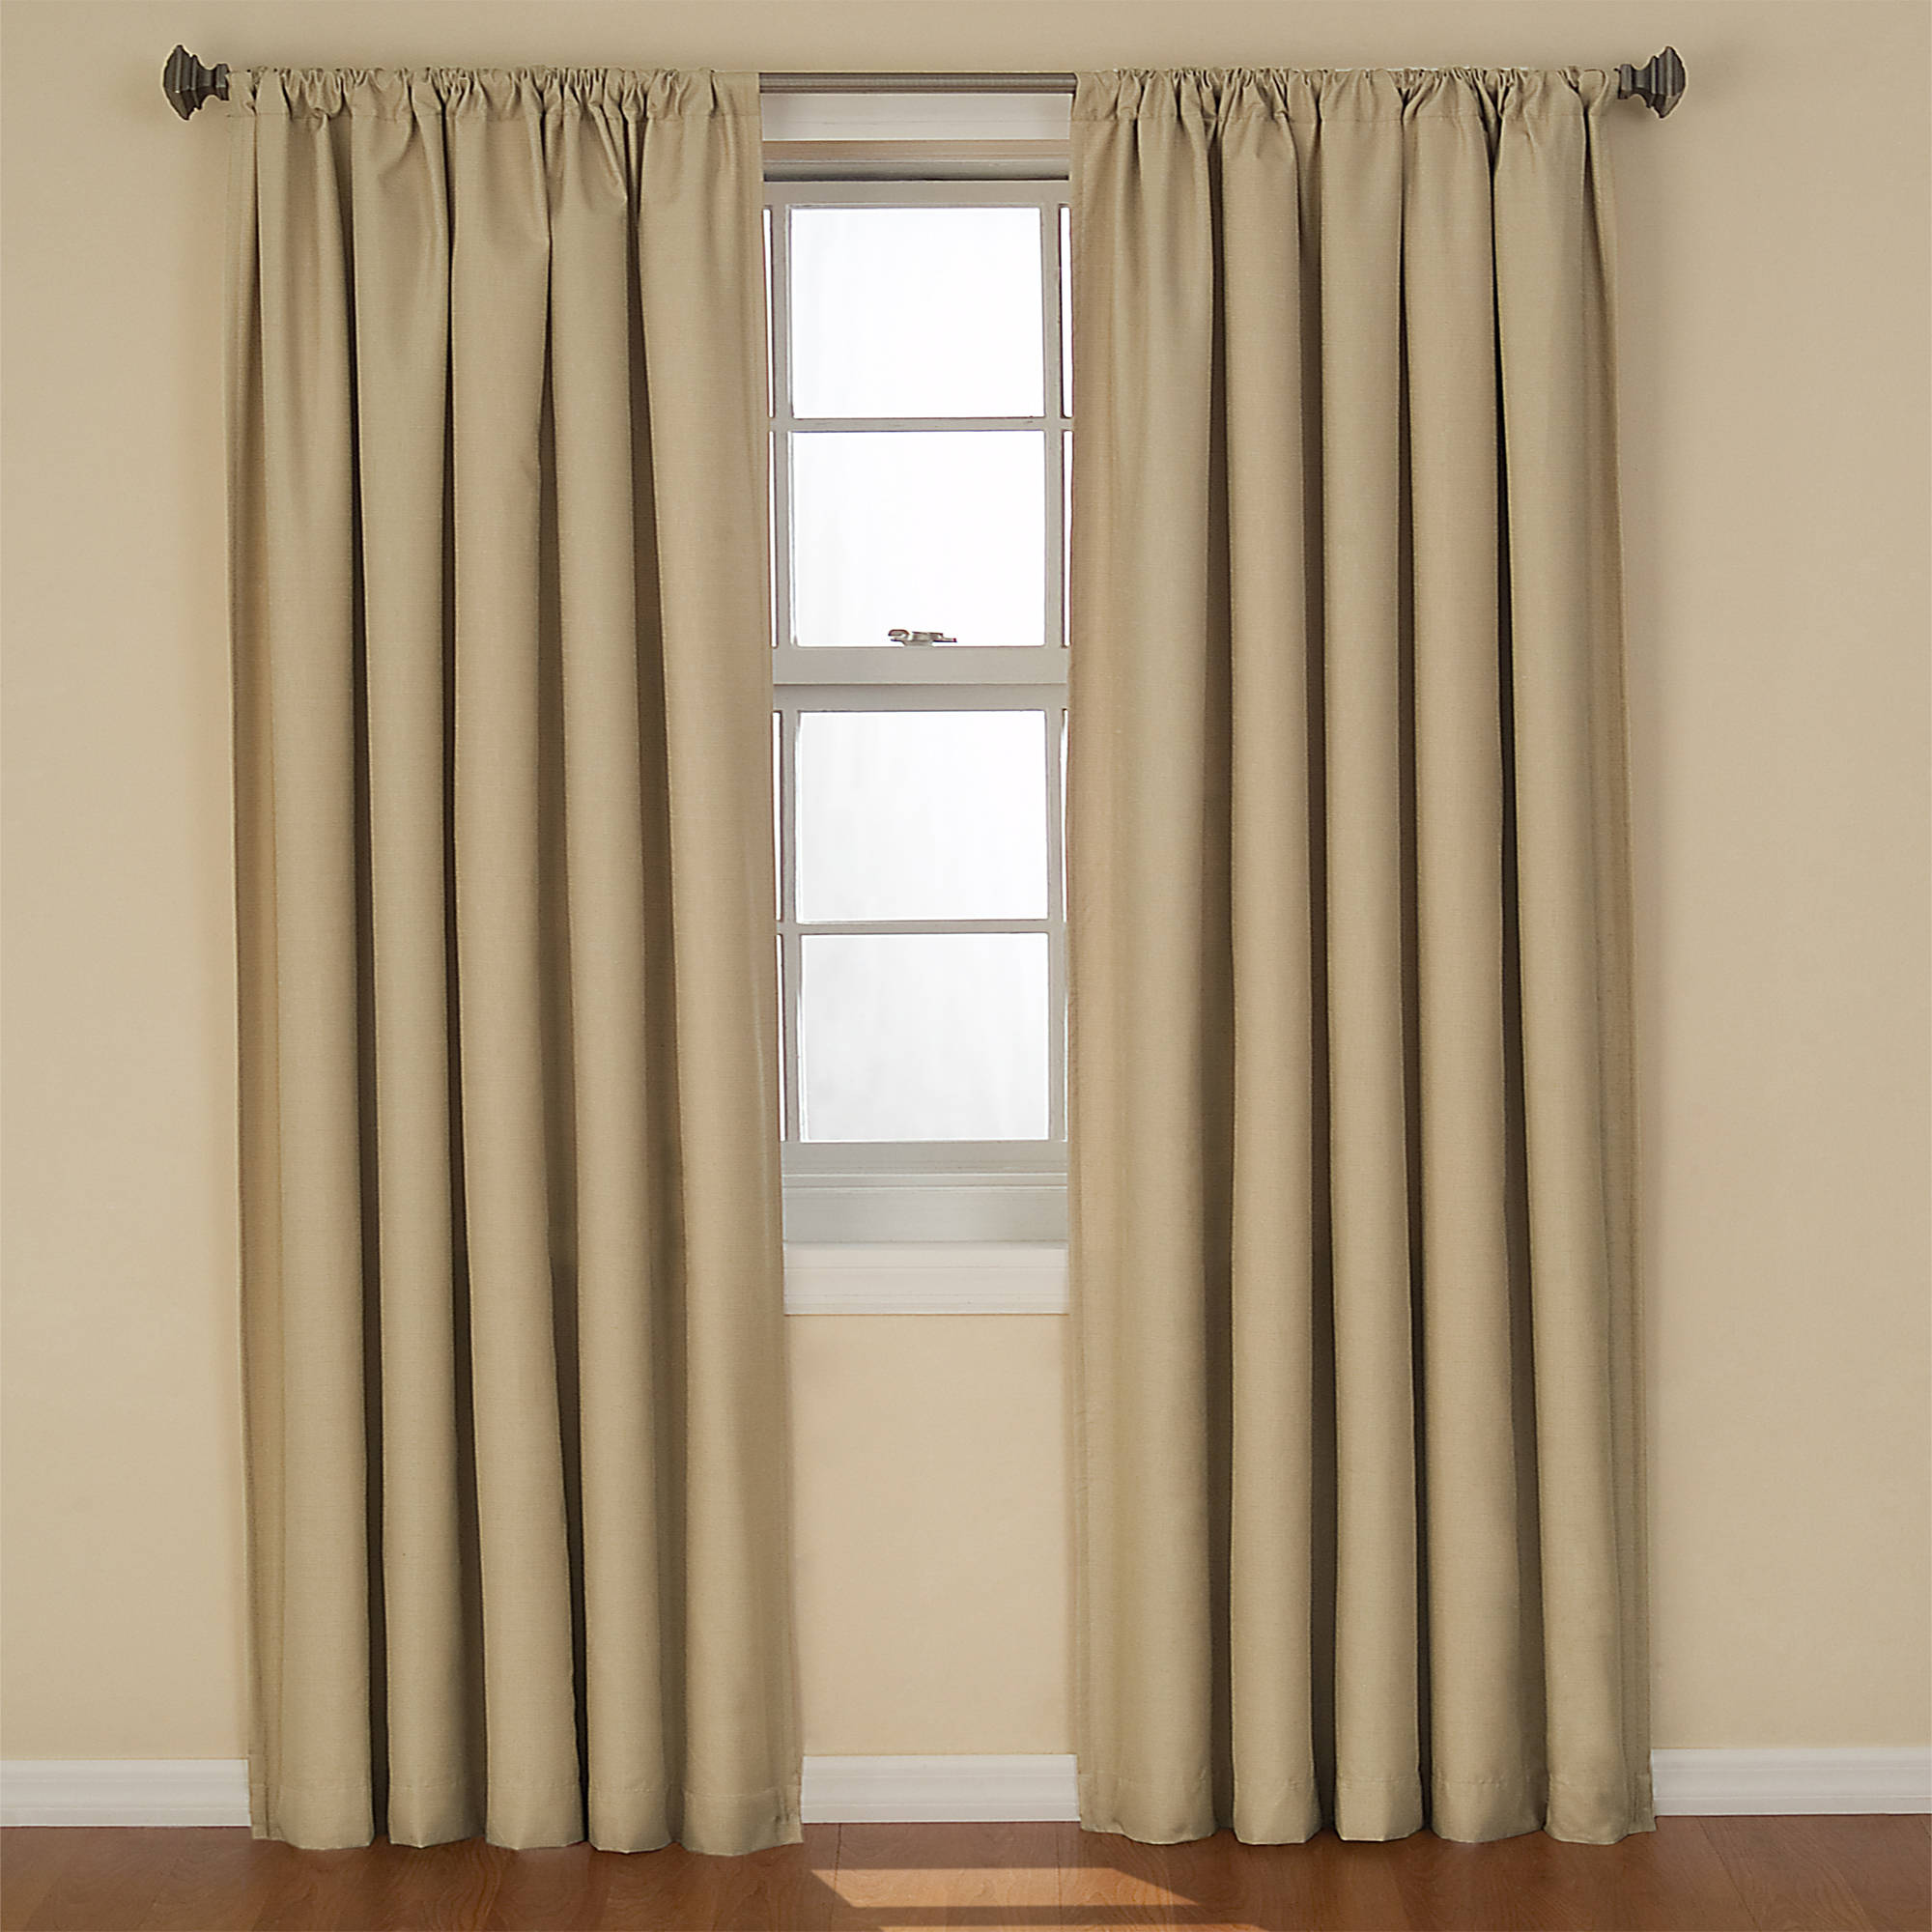 Thermal Insulated Curtains | Cheap Thermal Curtains | Solid Thermal Insulated Blackout Curtain